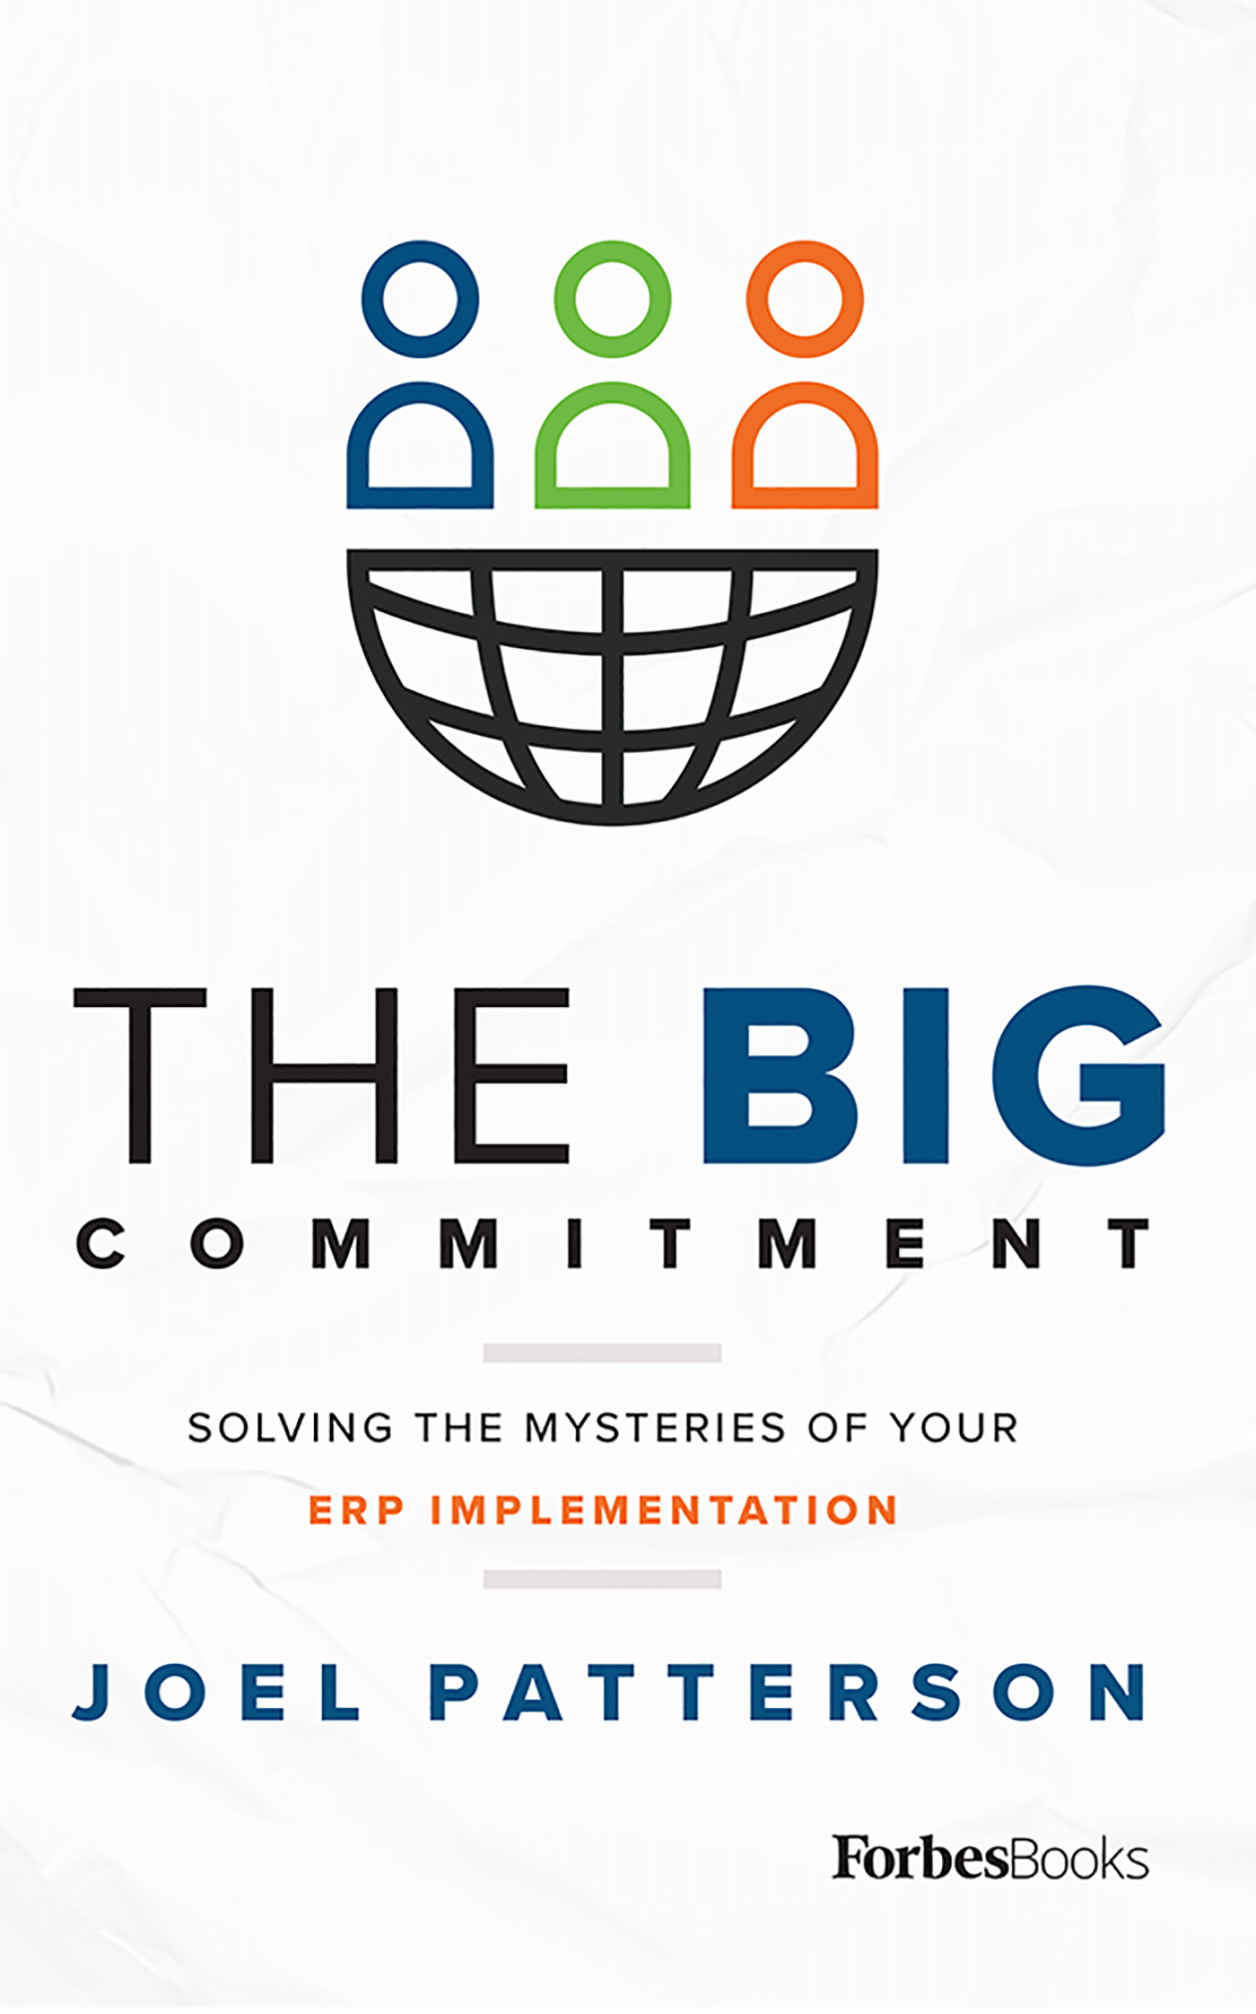 The Big Commitment by Joel Patterson